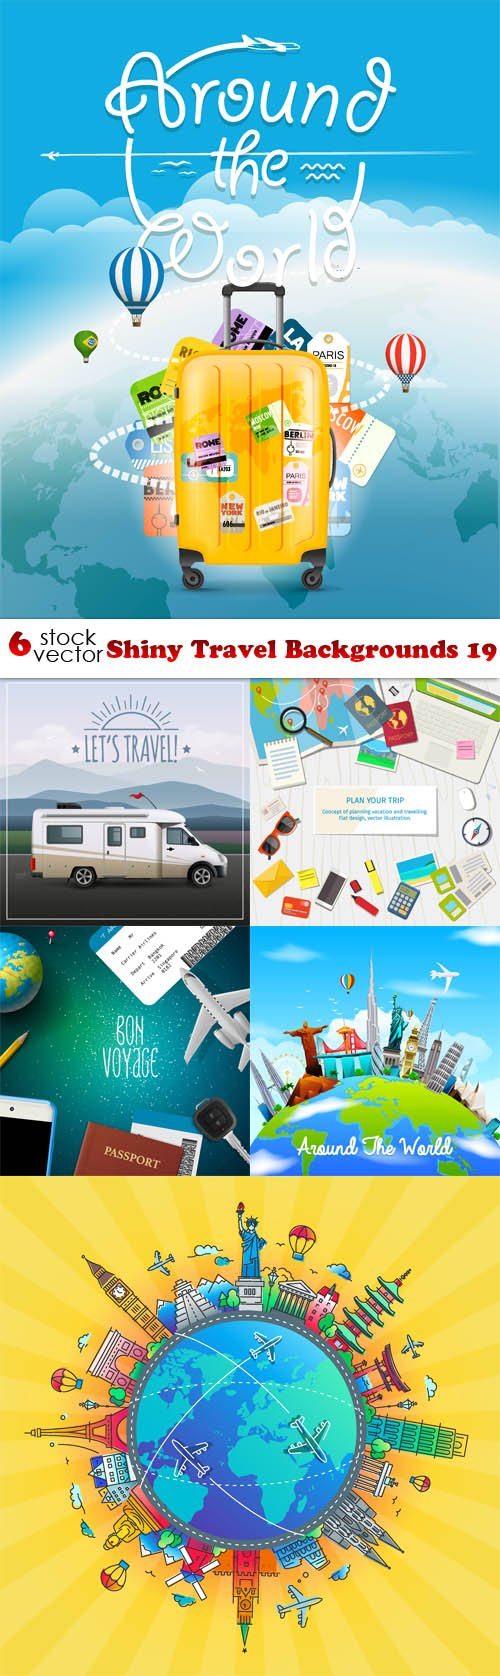 Vectors - Shiny Travel Backgrounds 19